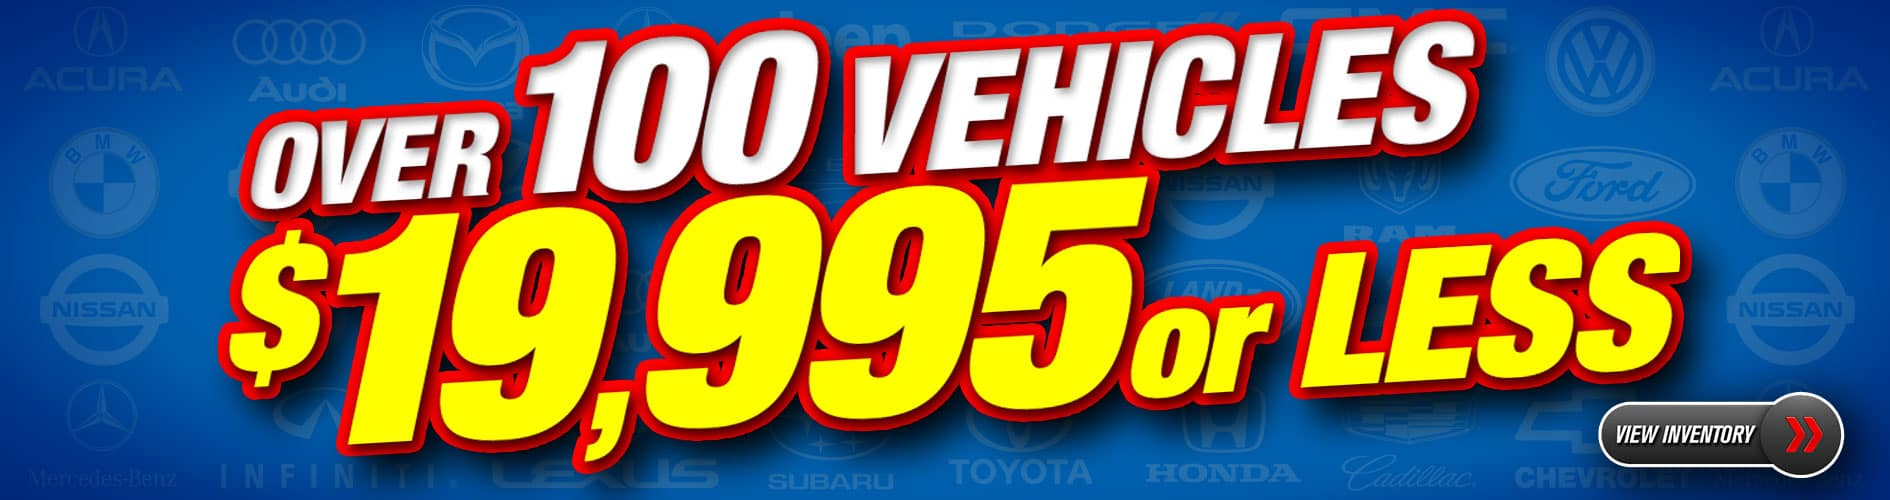 Over 100 Vehicles $19,995 or LESS